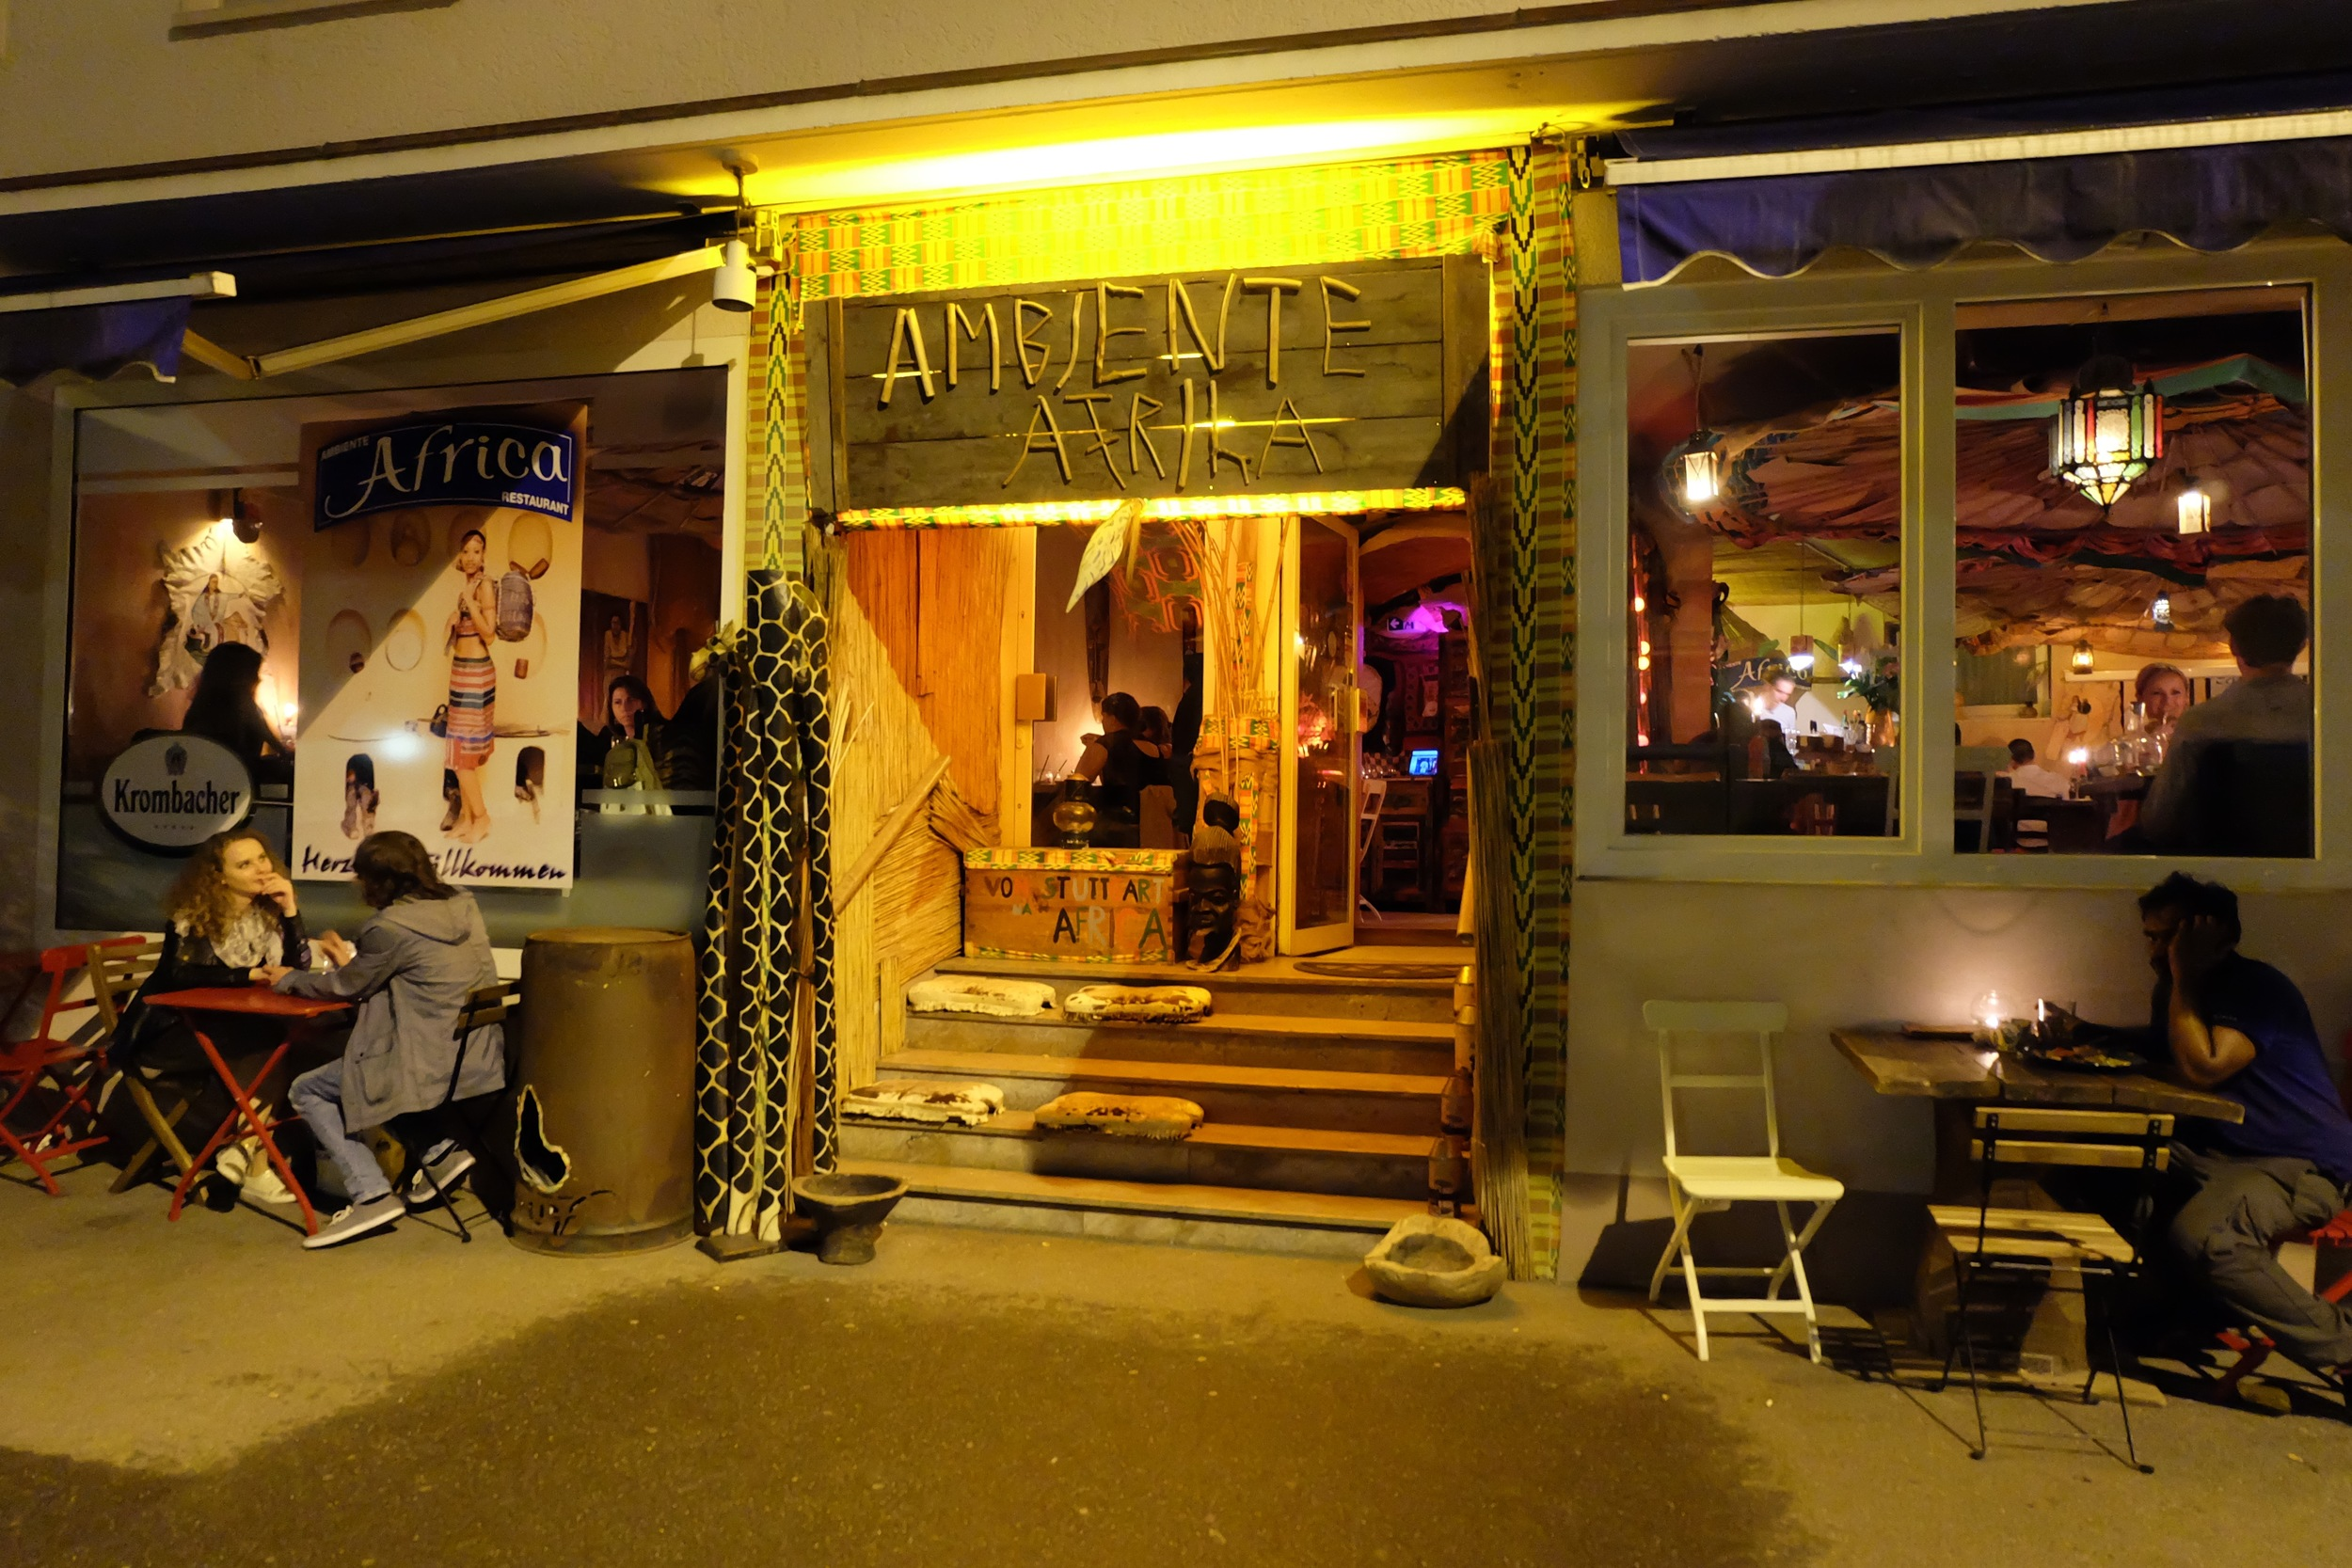 The entrance to Ambiente Africa